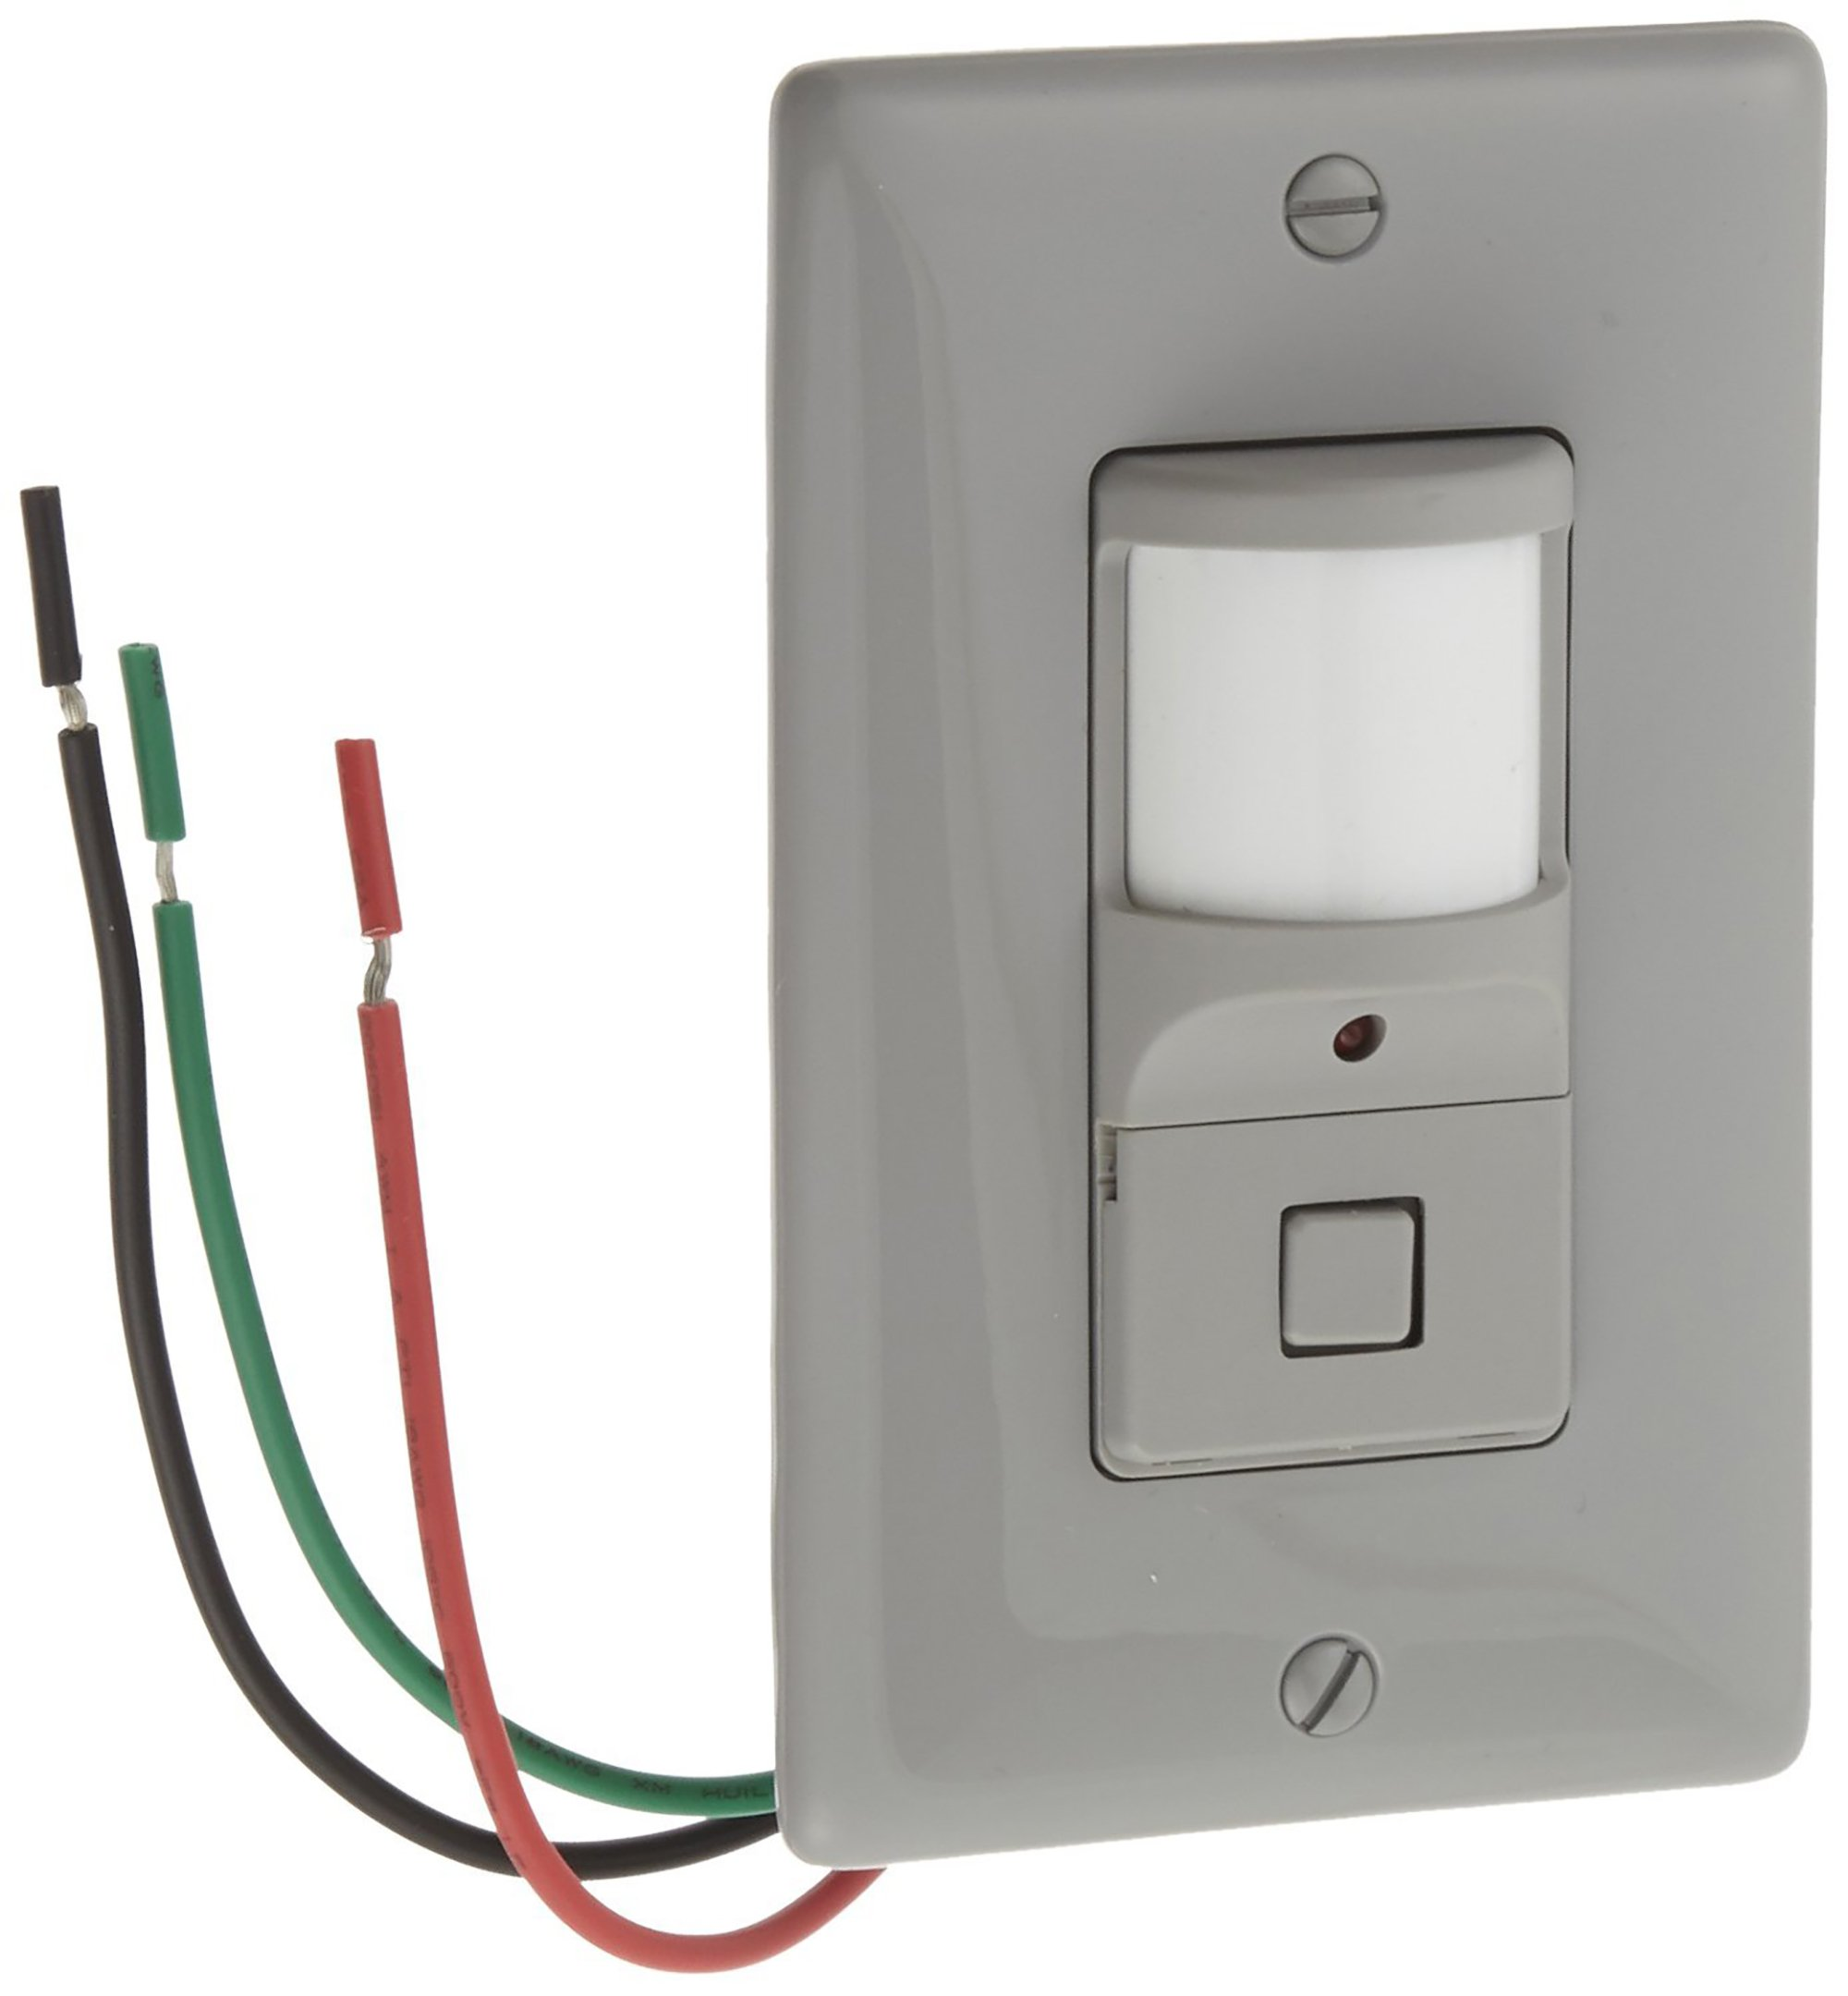 Hubbell  ATP1277GY Wall Switch Sensor, 1 button, Gray, 1200sqft Max Sensing Range, 800W Incandescent